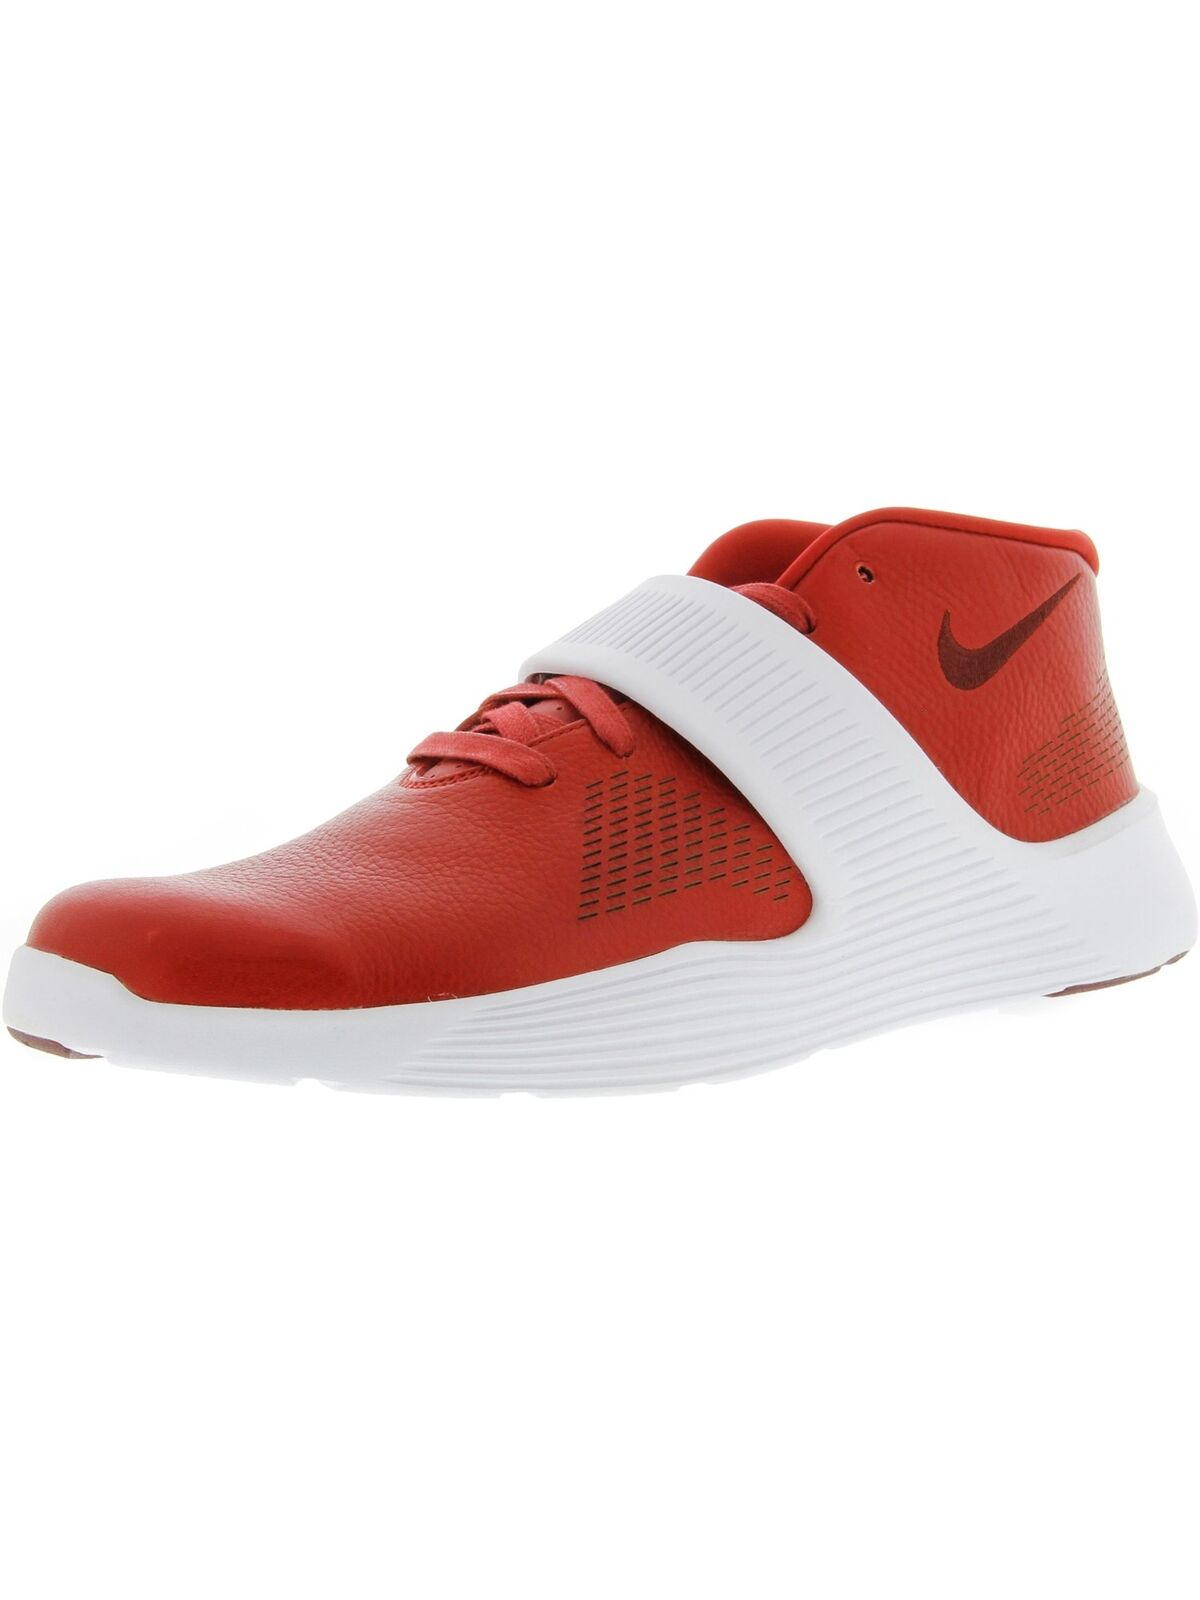 Nike Men's Ultra Xt Ankle-High Training shoes